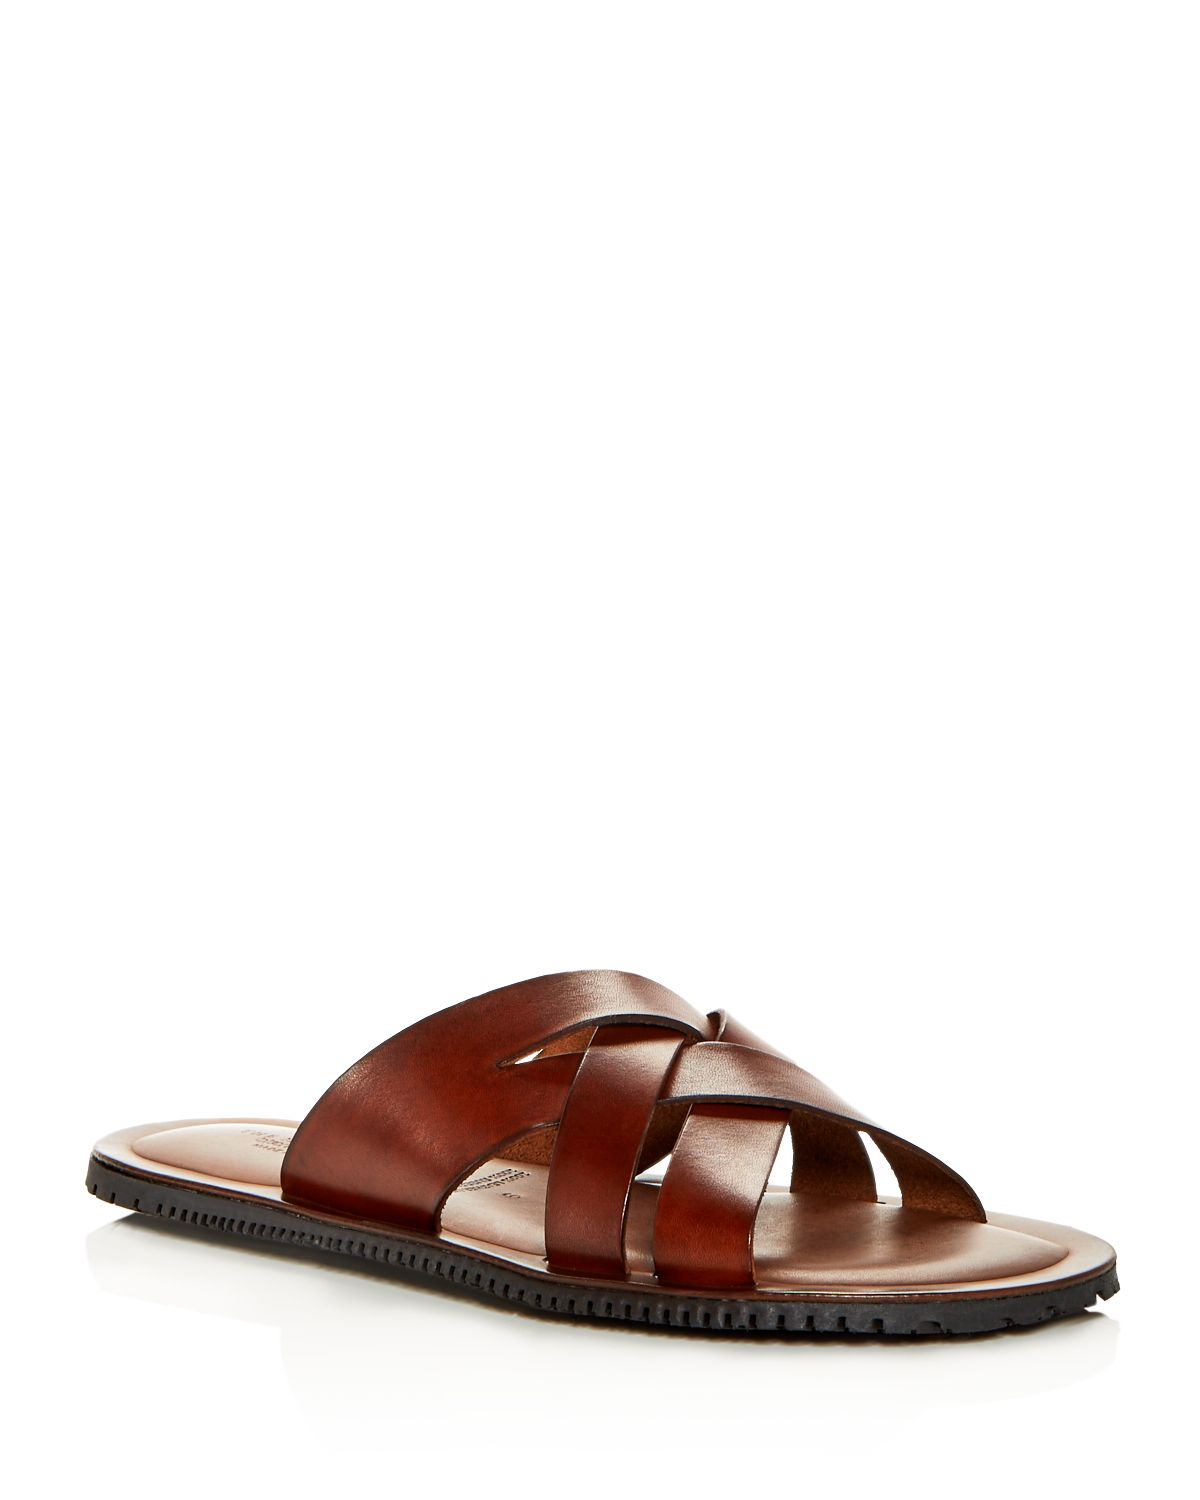 Bloomingdale's Woven Leather Slide Sandals - 100% Exclusive